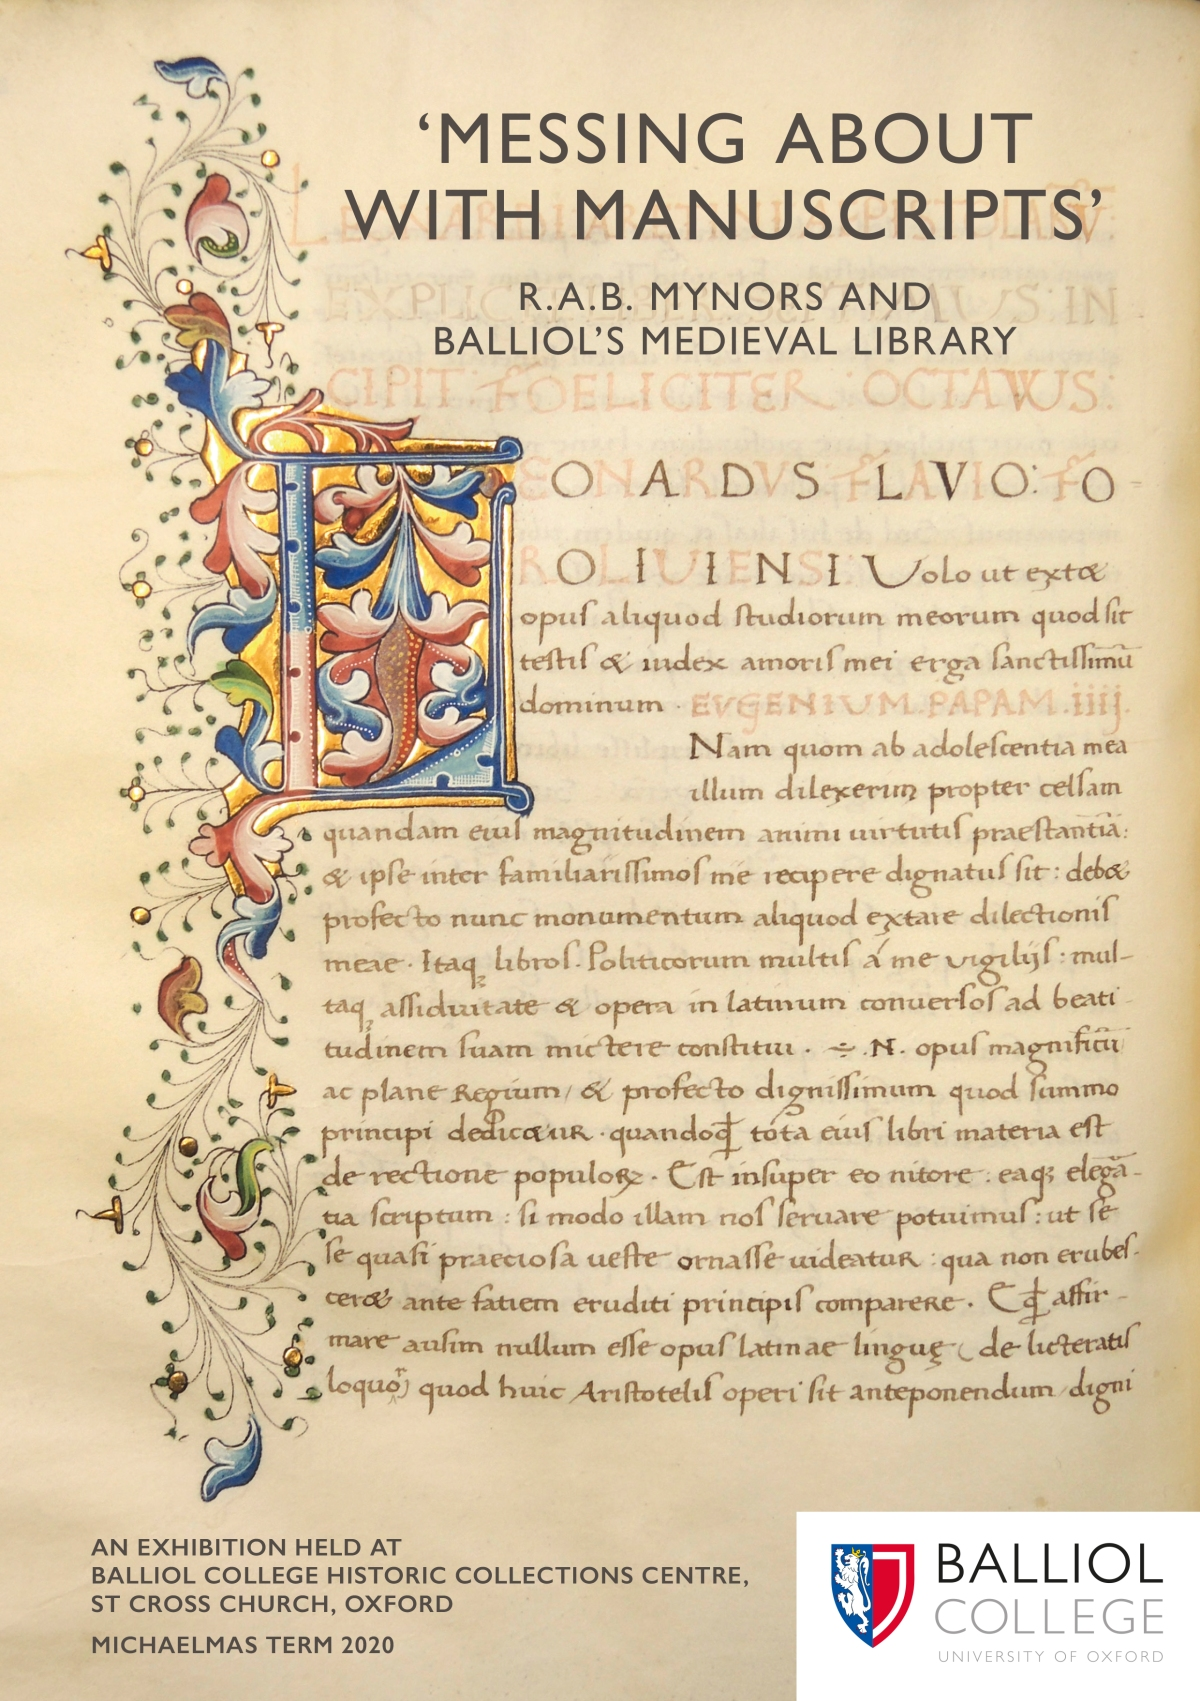 'Messing About with Manuscripts': R.A.B. Mynors and Balliol's MedievalLibrary